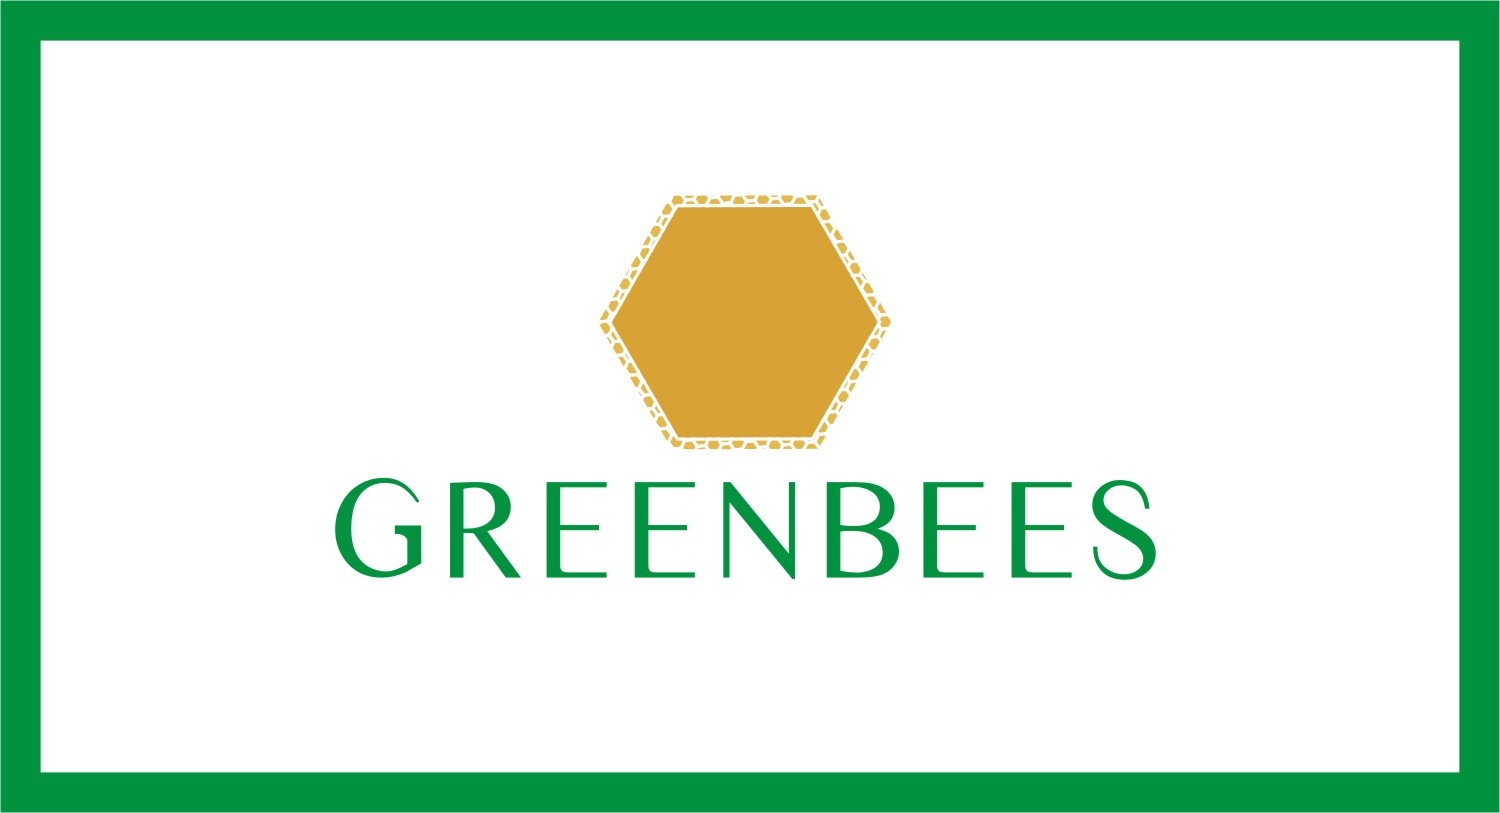 Logo Design by Crystal Desizns - Entry No. 250 in the Logo Design Contest Greenbees Logo Design.